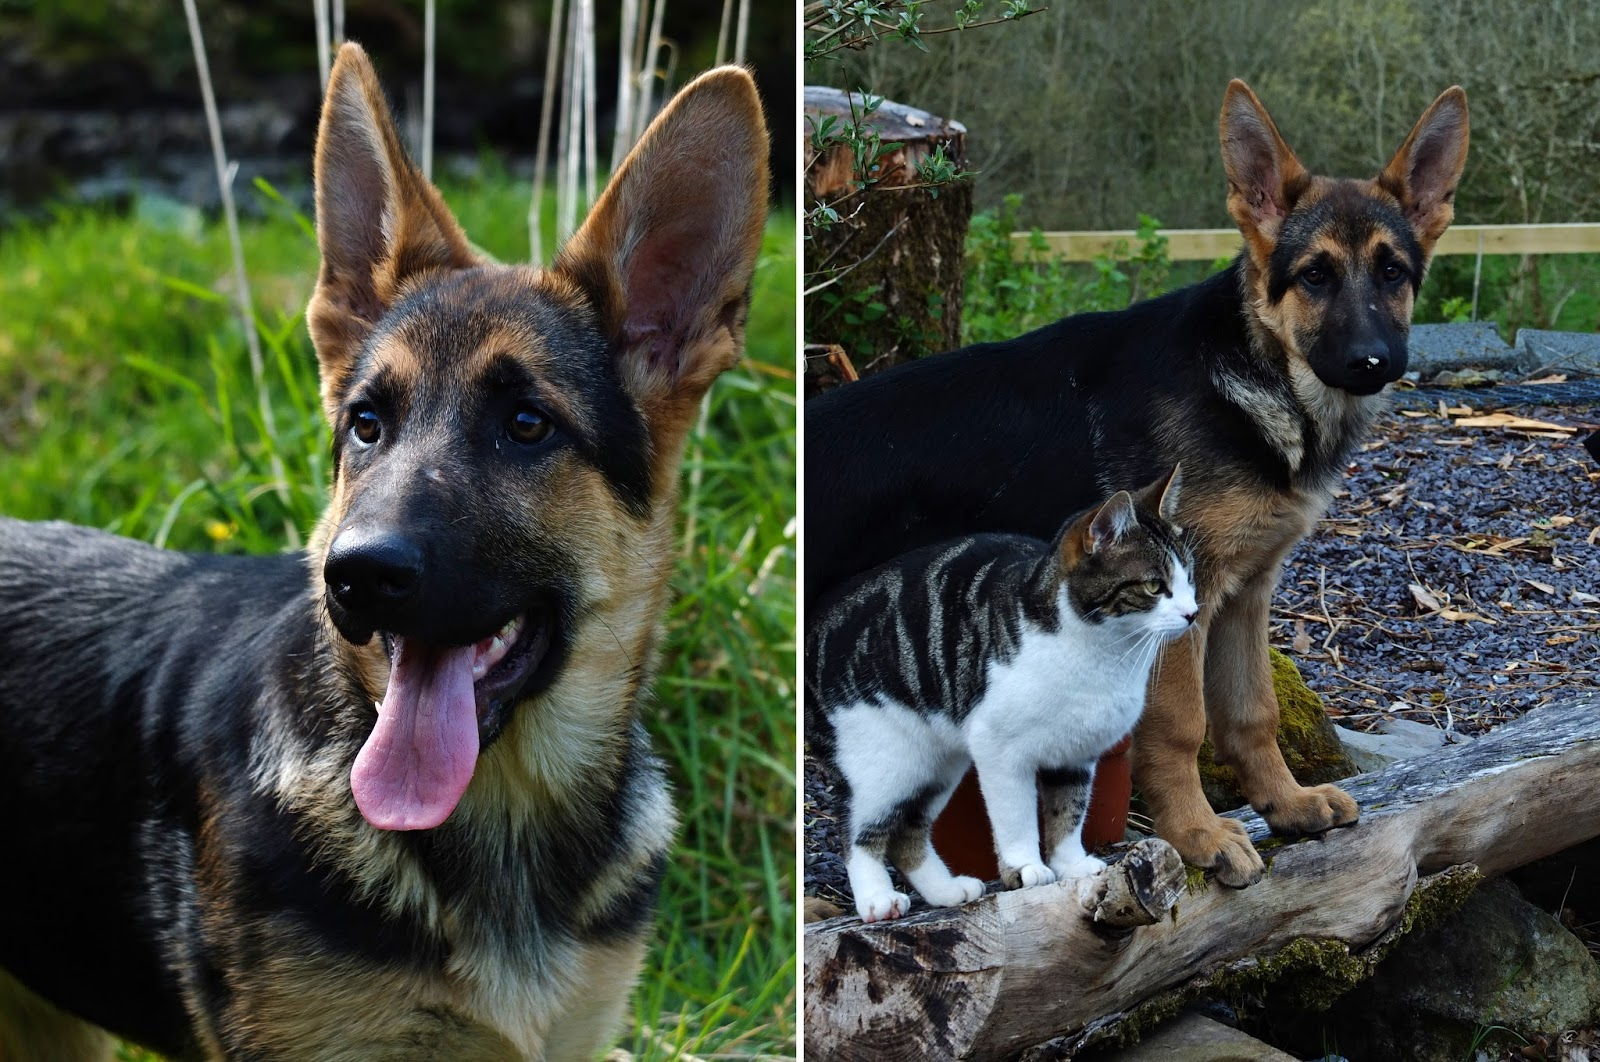 Collage of photos of a German Shepherd puppy and her new friend Sassy cat.